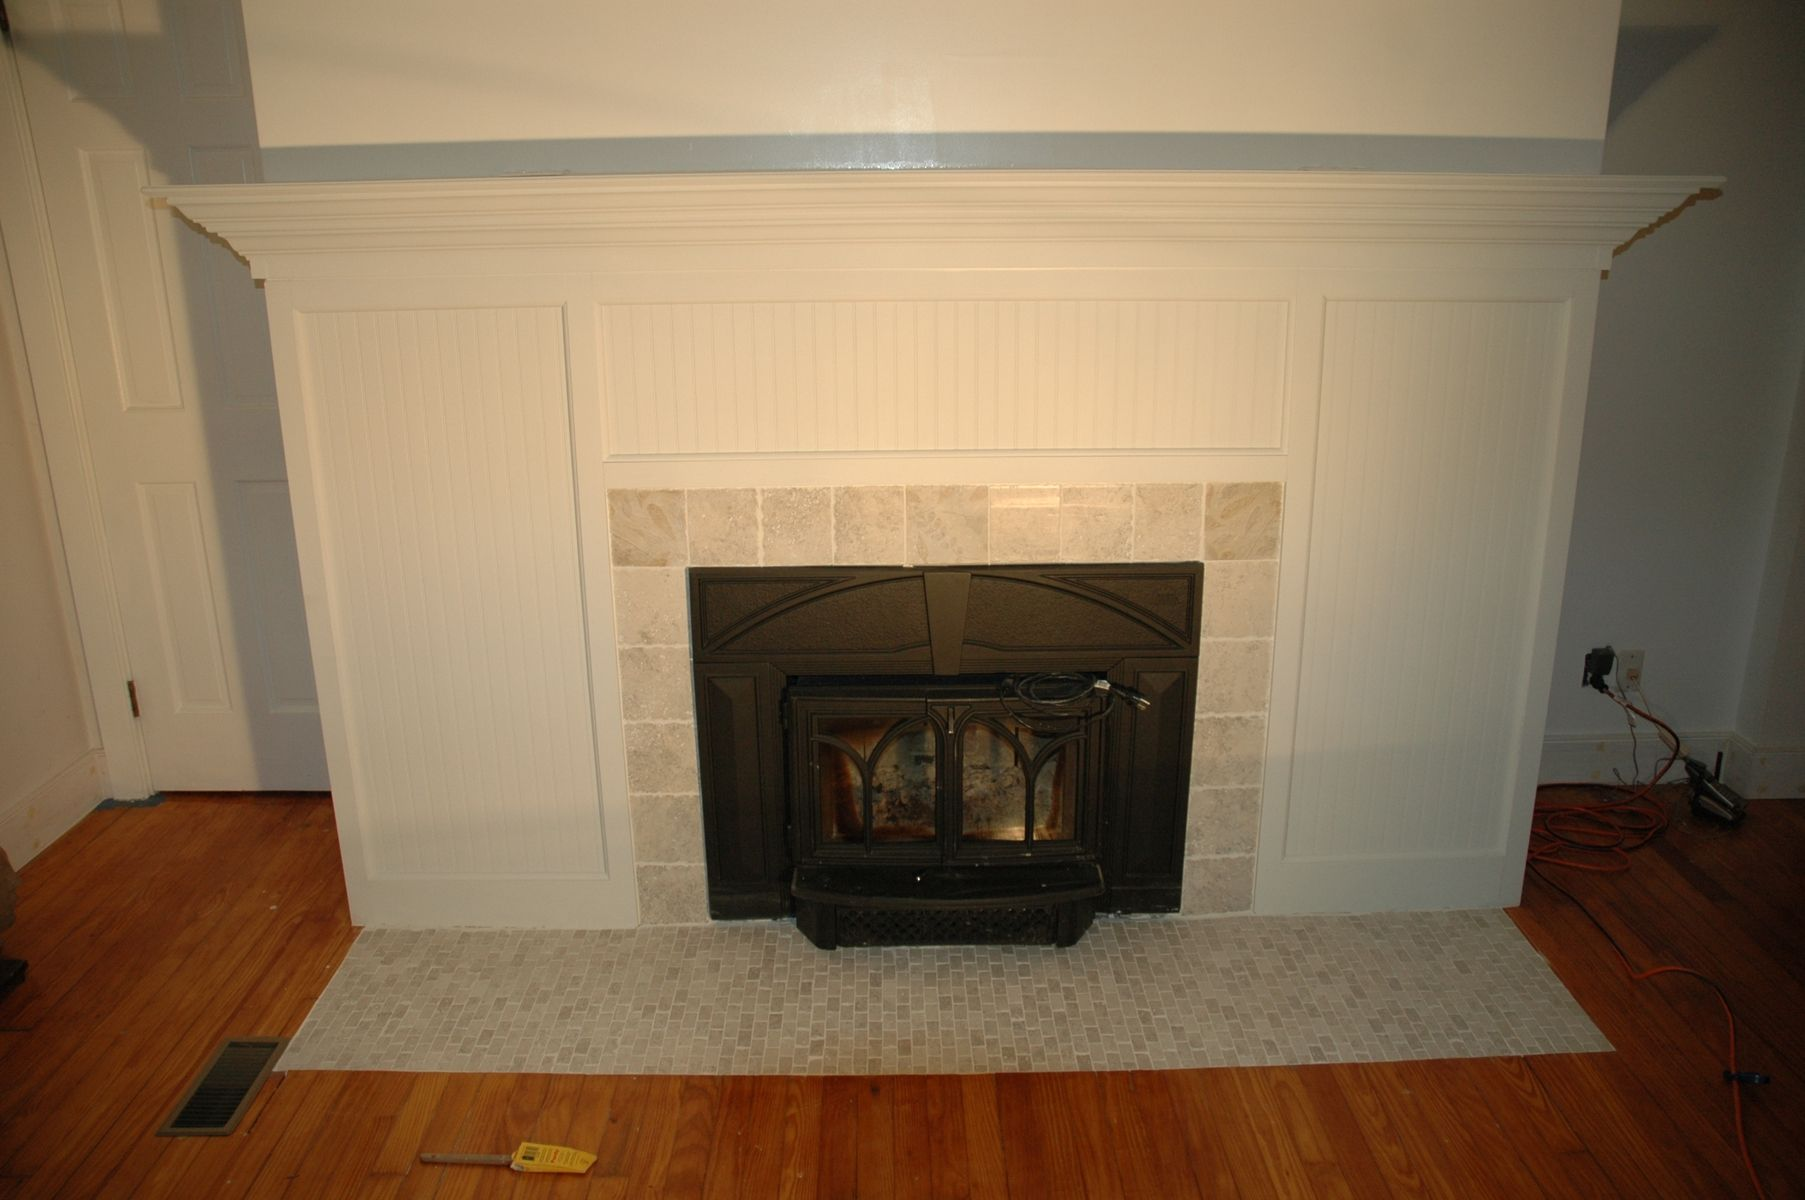 Handmade custom fireplace surround amp tile remodel by wooden it be nice